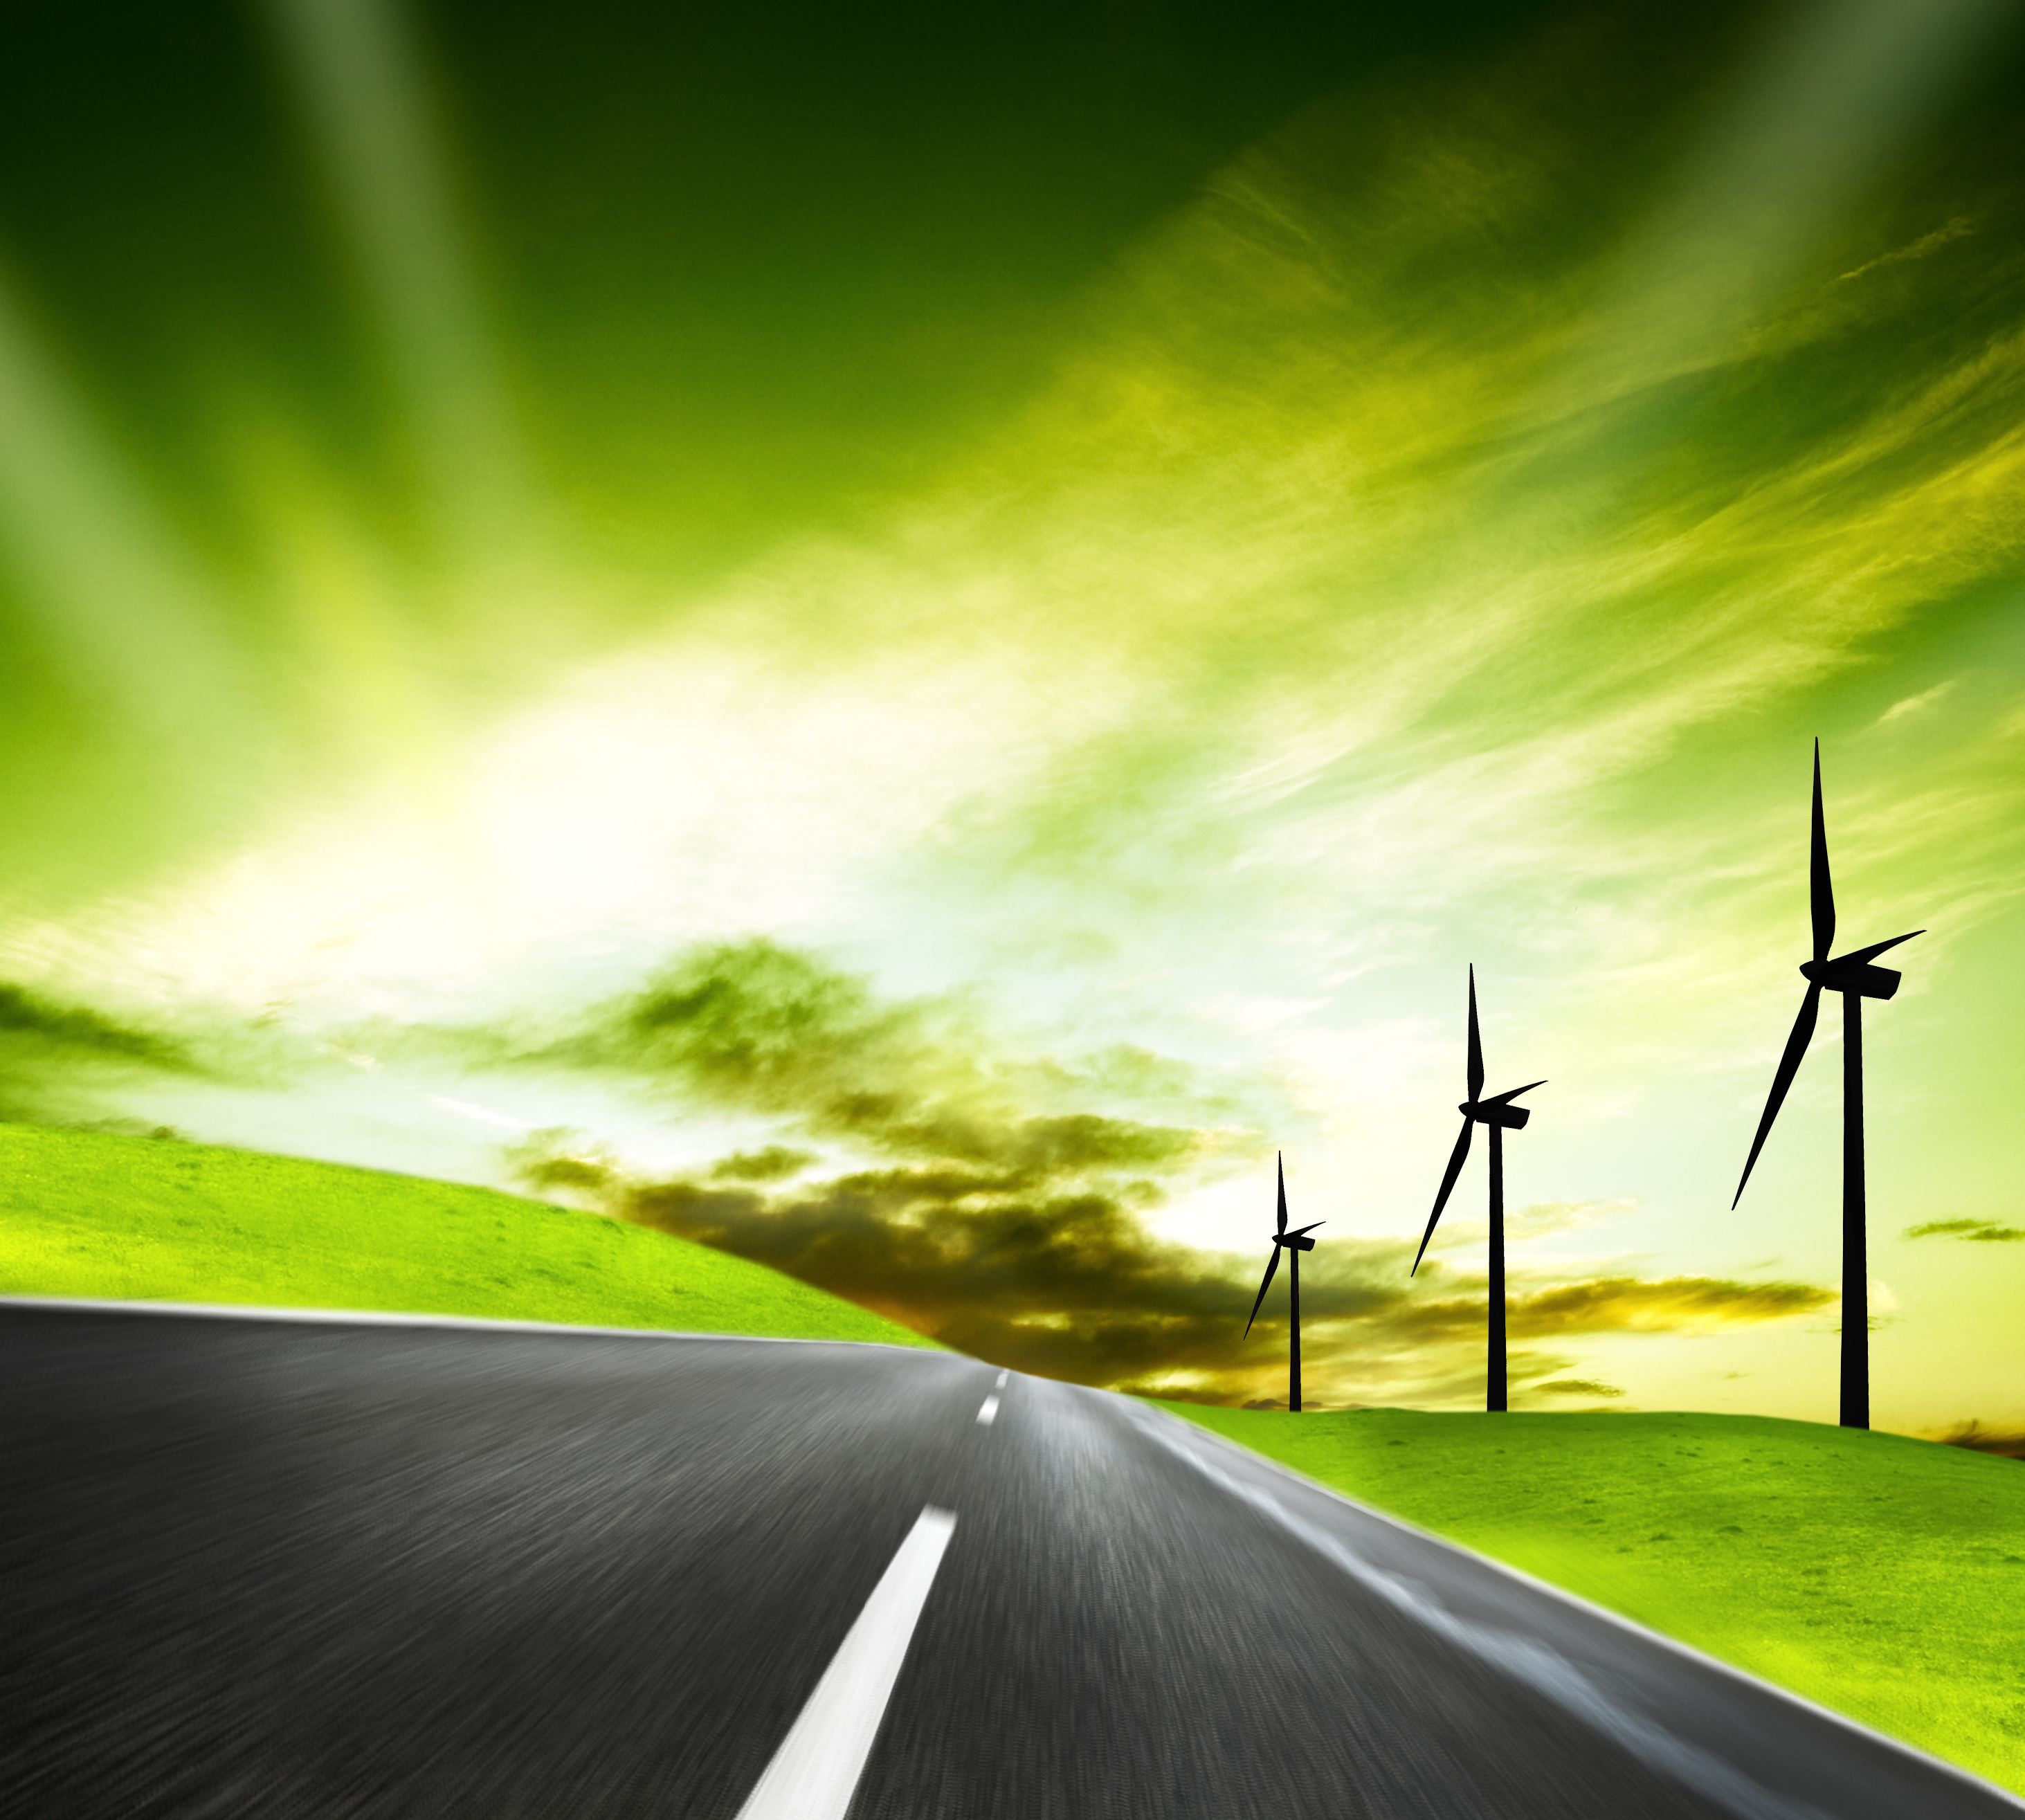 Futuristic view showing a country road with wind turbines on the right side and a green sky